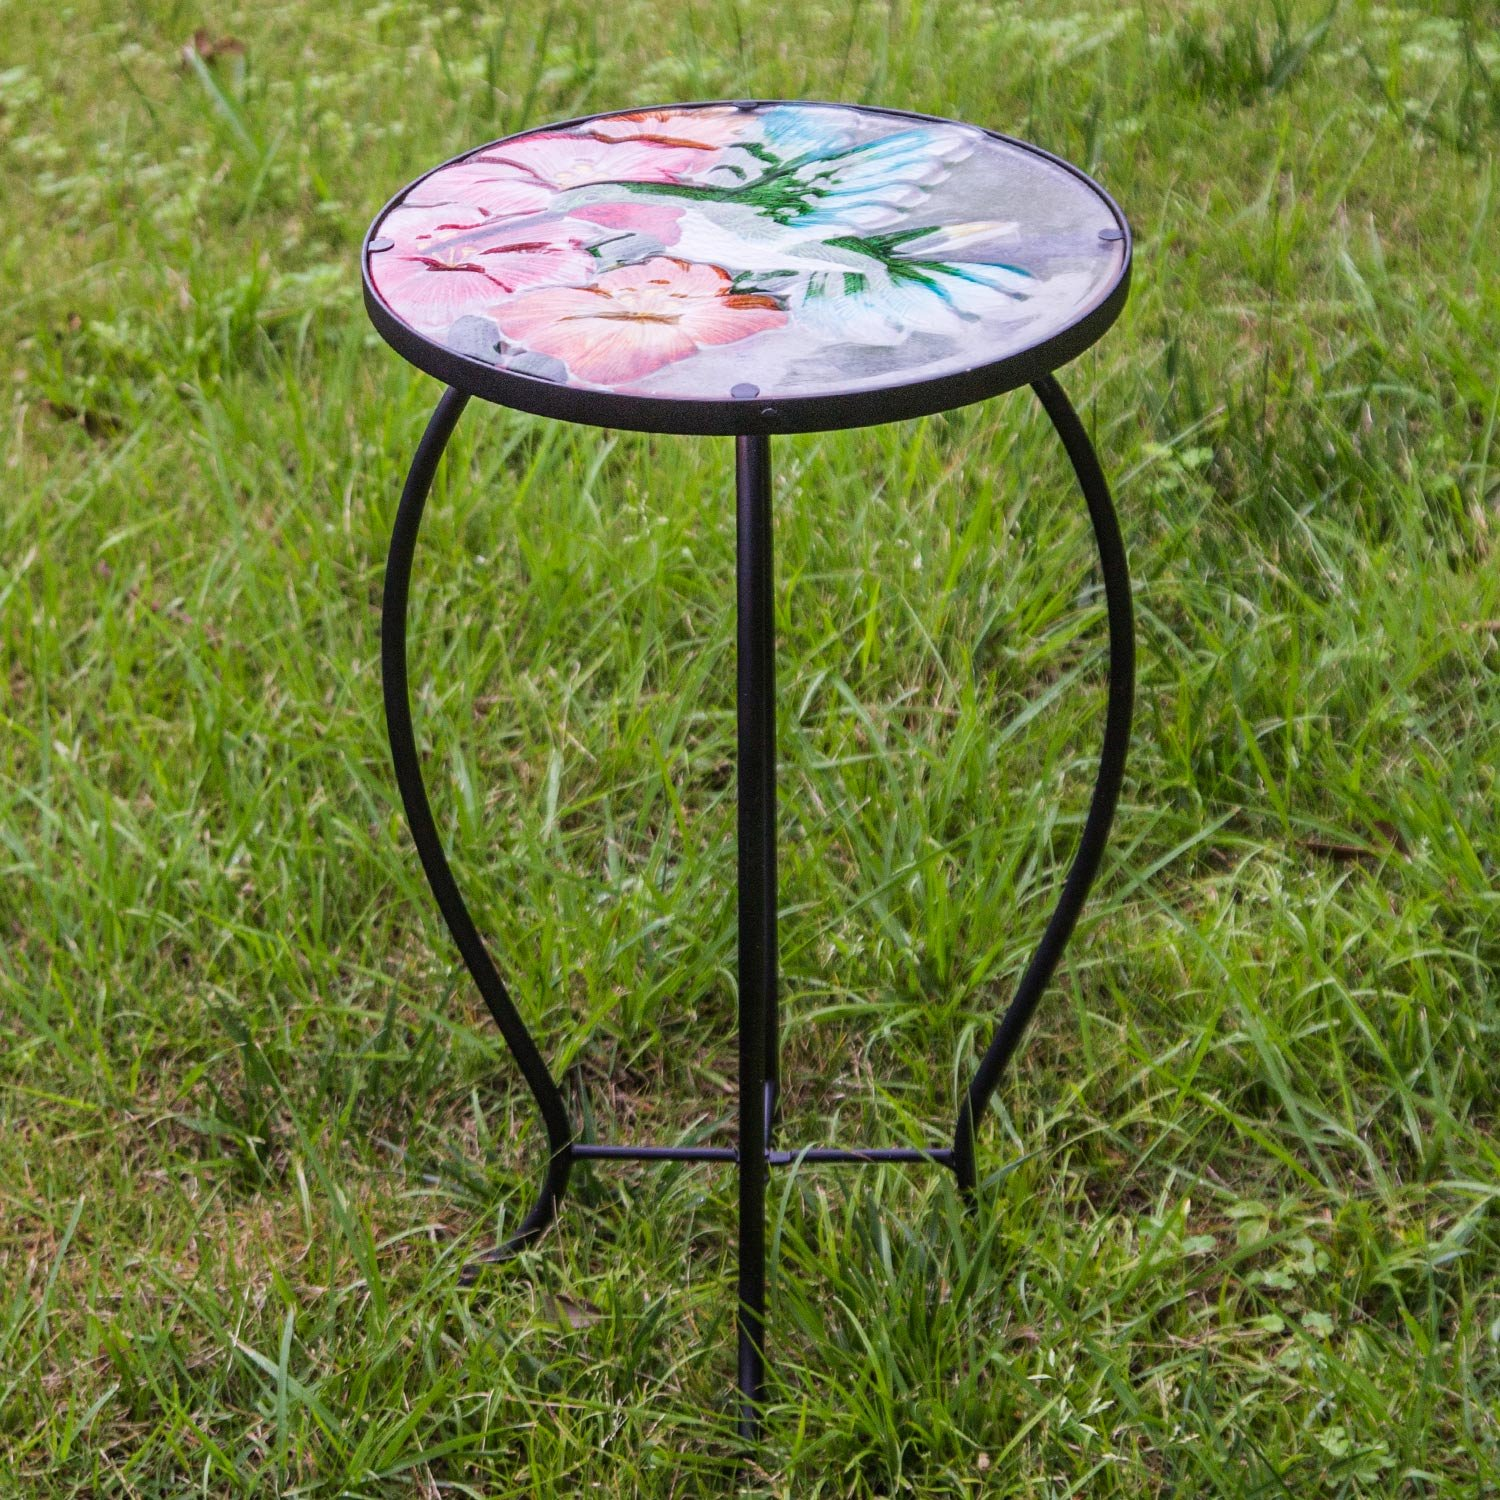 side table outdoor garden metal accent desk round hand painted glass console with shelves lobby furniture top patio coffee pottery barn square corner end storage bar height dining